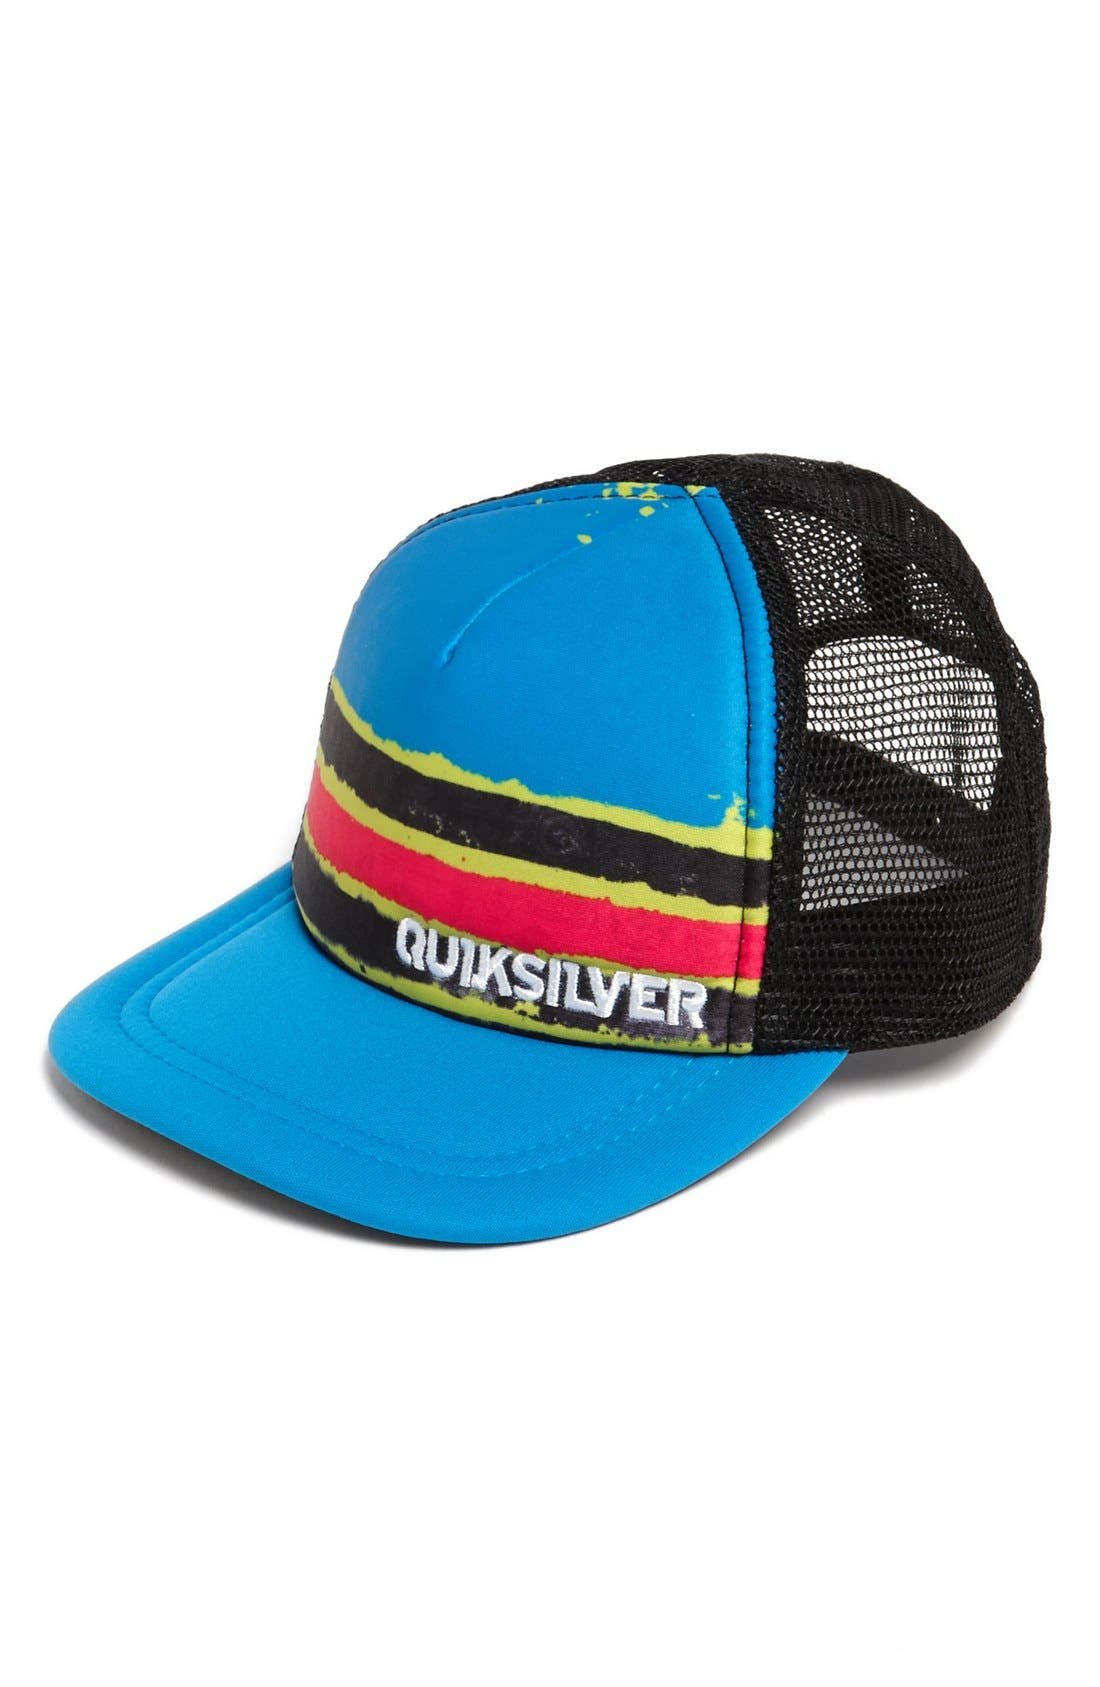 Alternate Image 1 Selected - Quiksilver 'Boards' Trucker Hat (Toddler Boys)